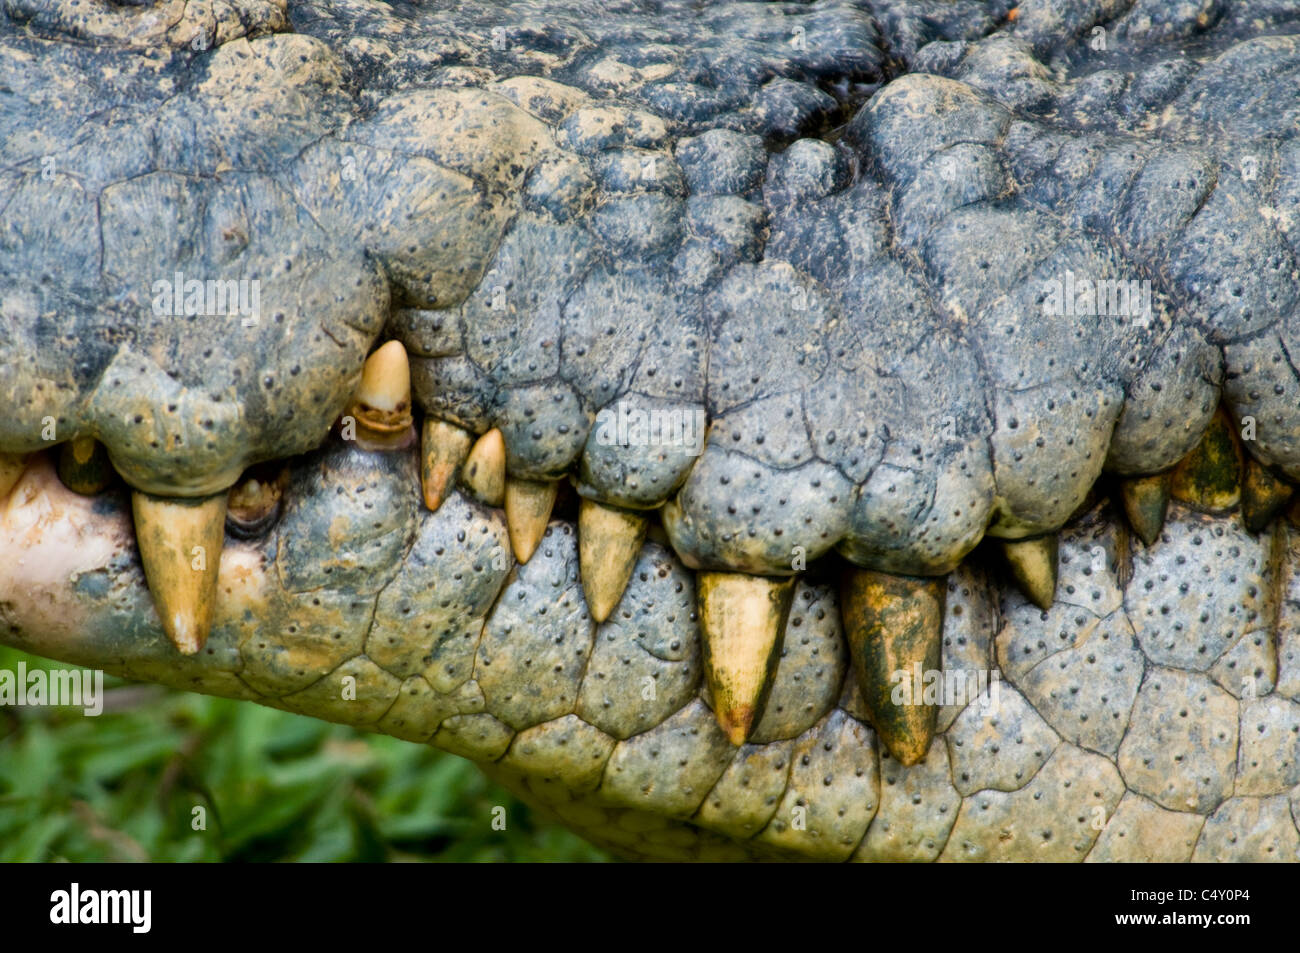 Close-up of snout of saltwater (estuarine) crocodile (Crocodylus porosus) at the Cairns Tropical Zoo in Queensland - Stock Image